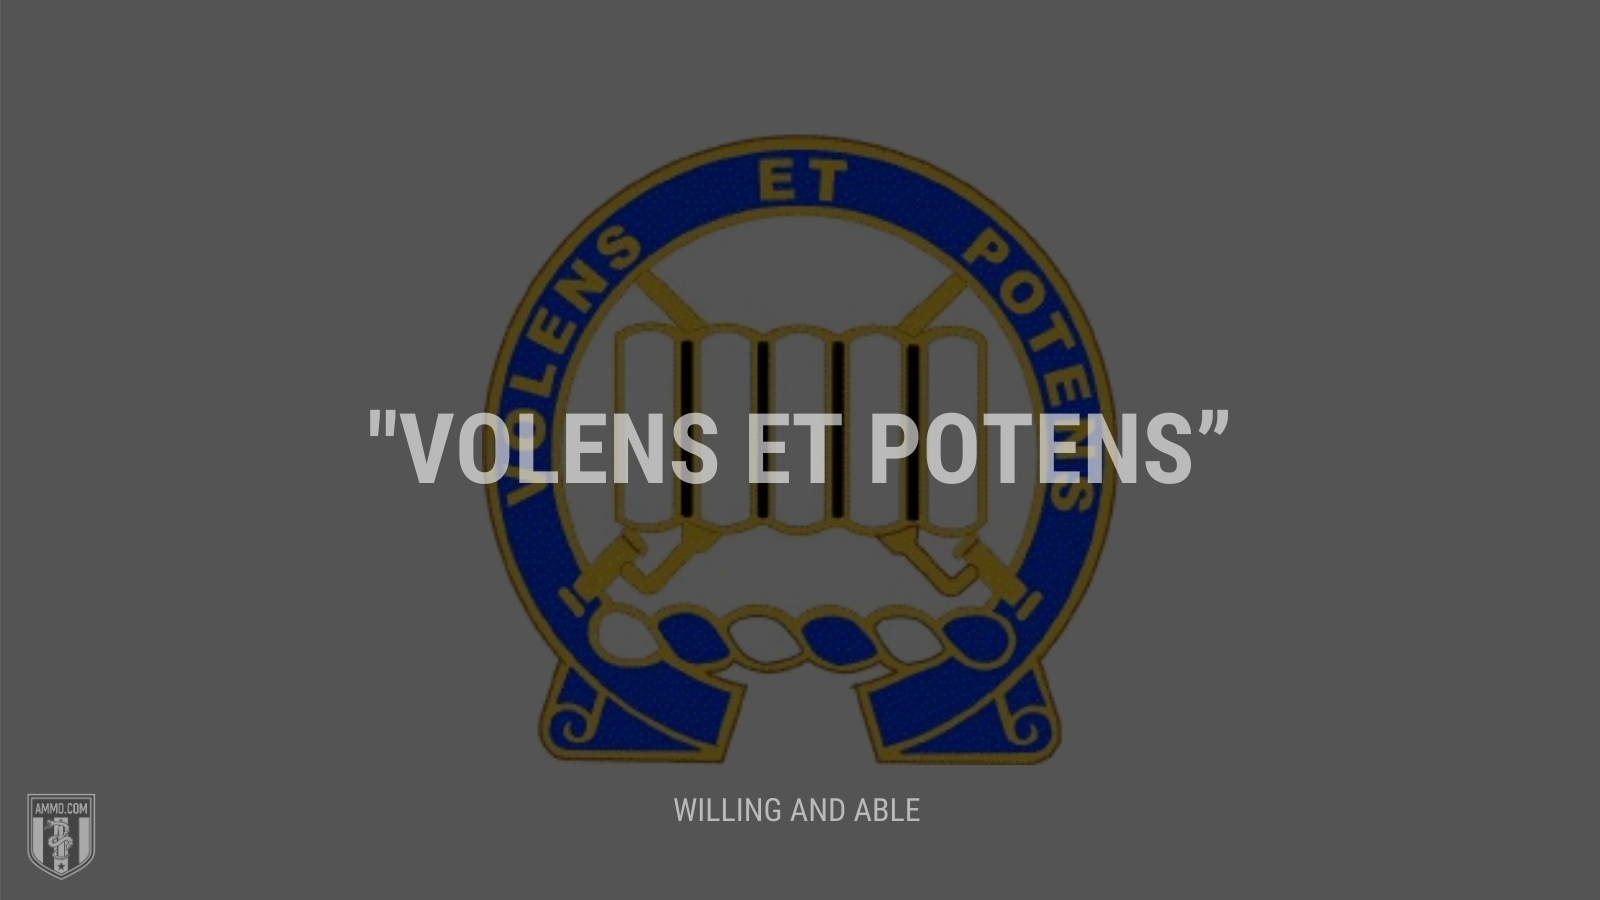 """""""Volens et potens"""" - Willing and able"""